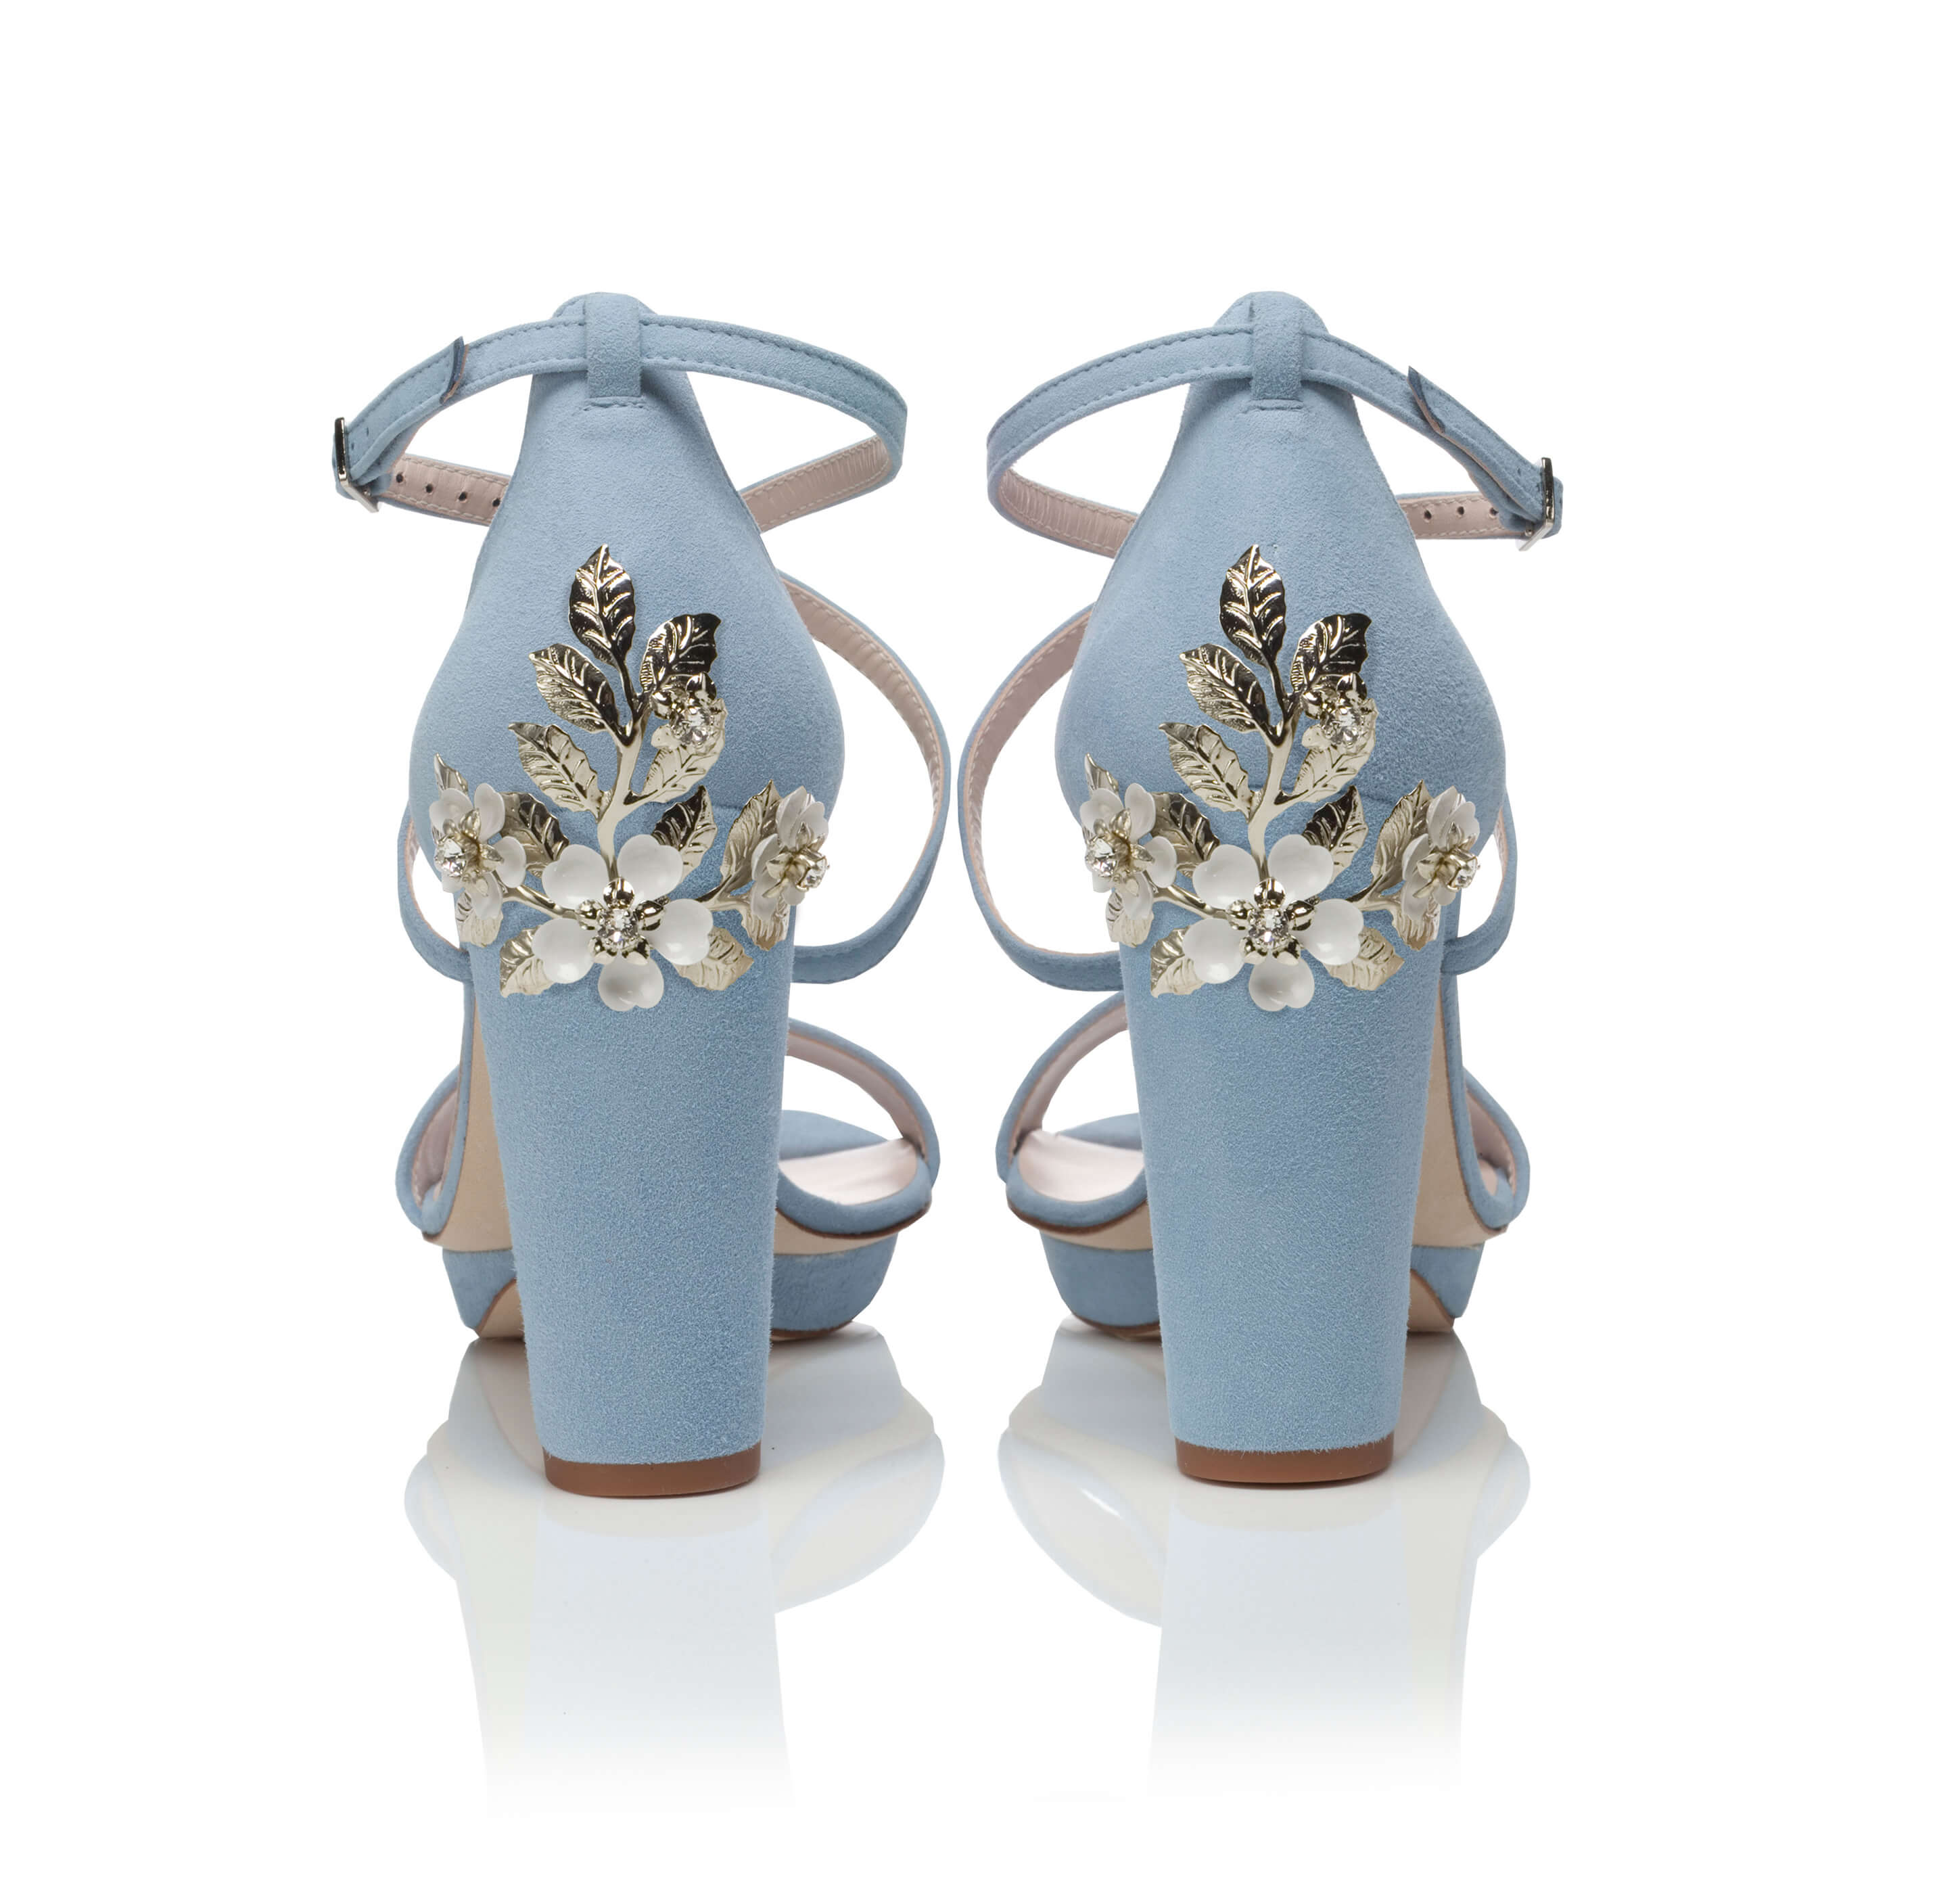 Arabella Block Blue -  Arabella Block Blue Blossom Small Silver